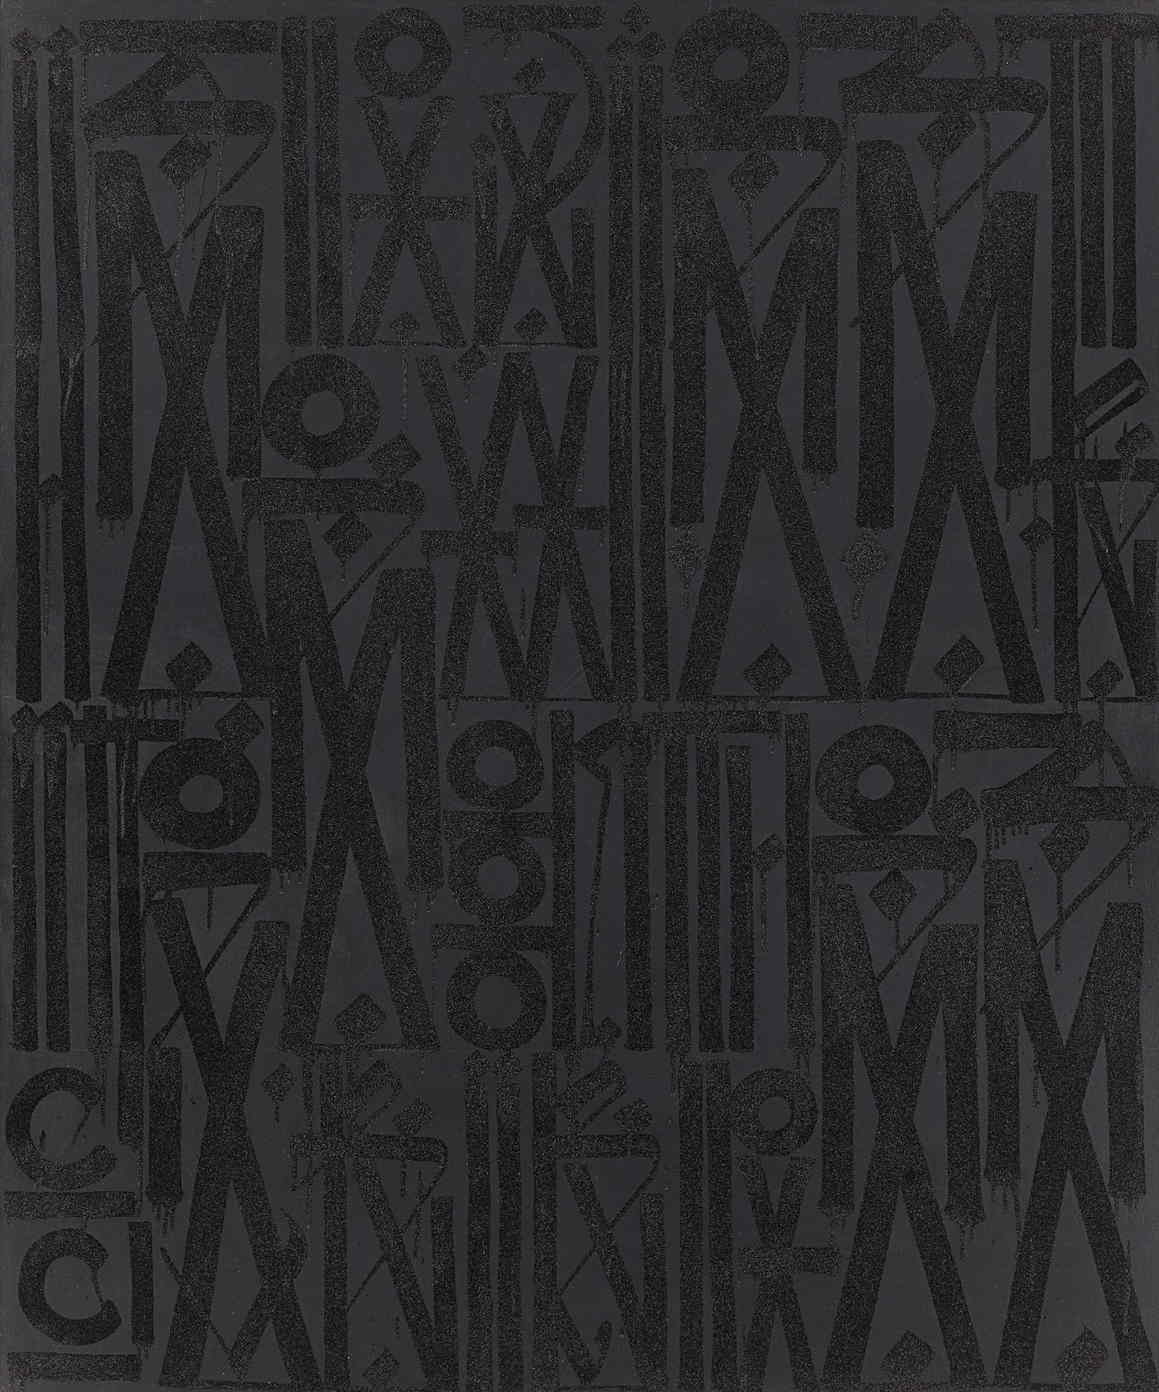 Retna-Study of Lexicon-2012